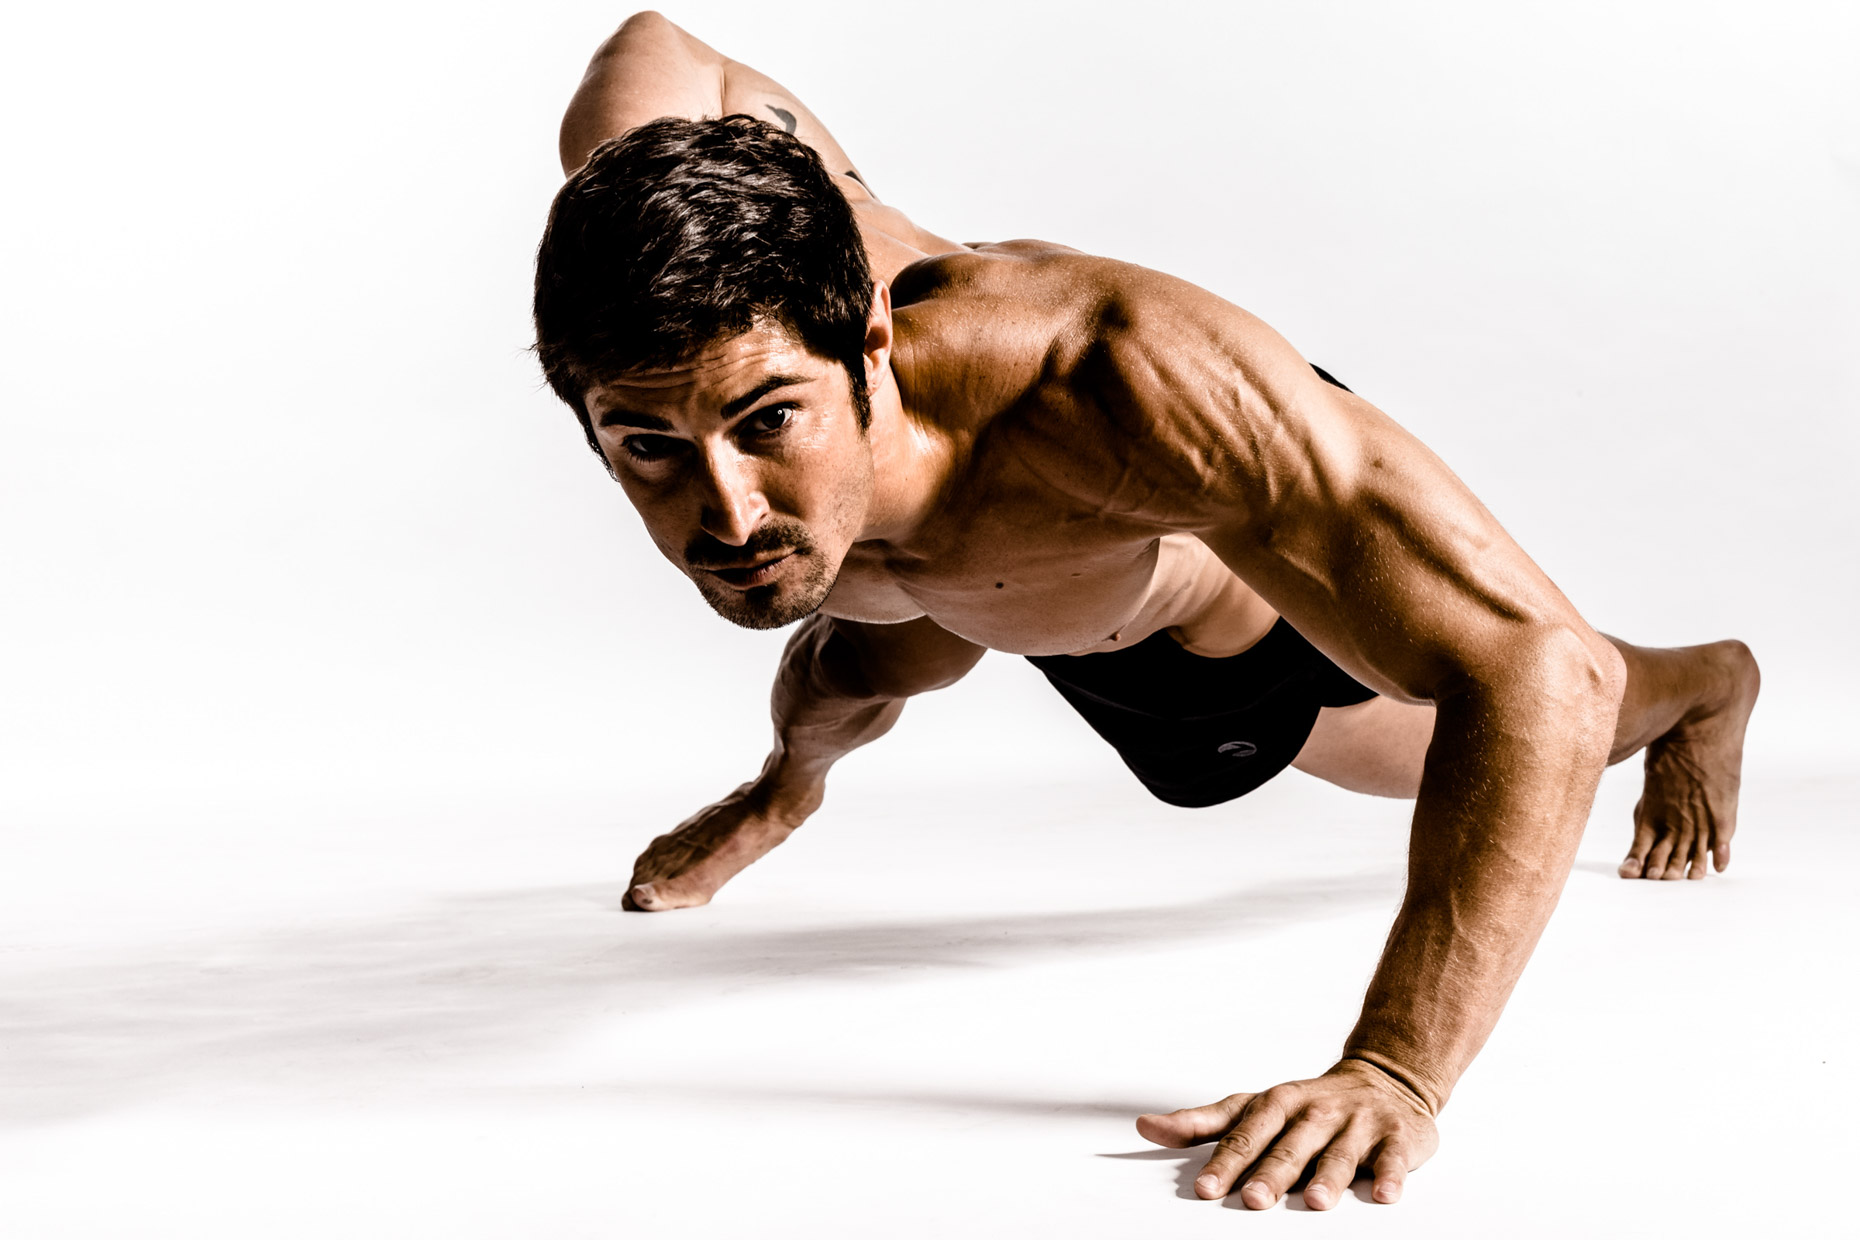 Rudy Reyes performs push ups for dramatic fitness photographer Andy Batt